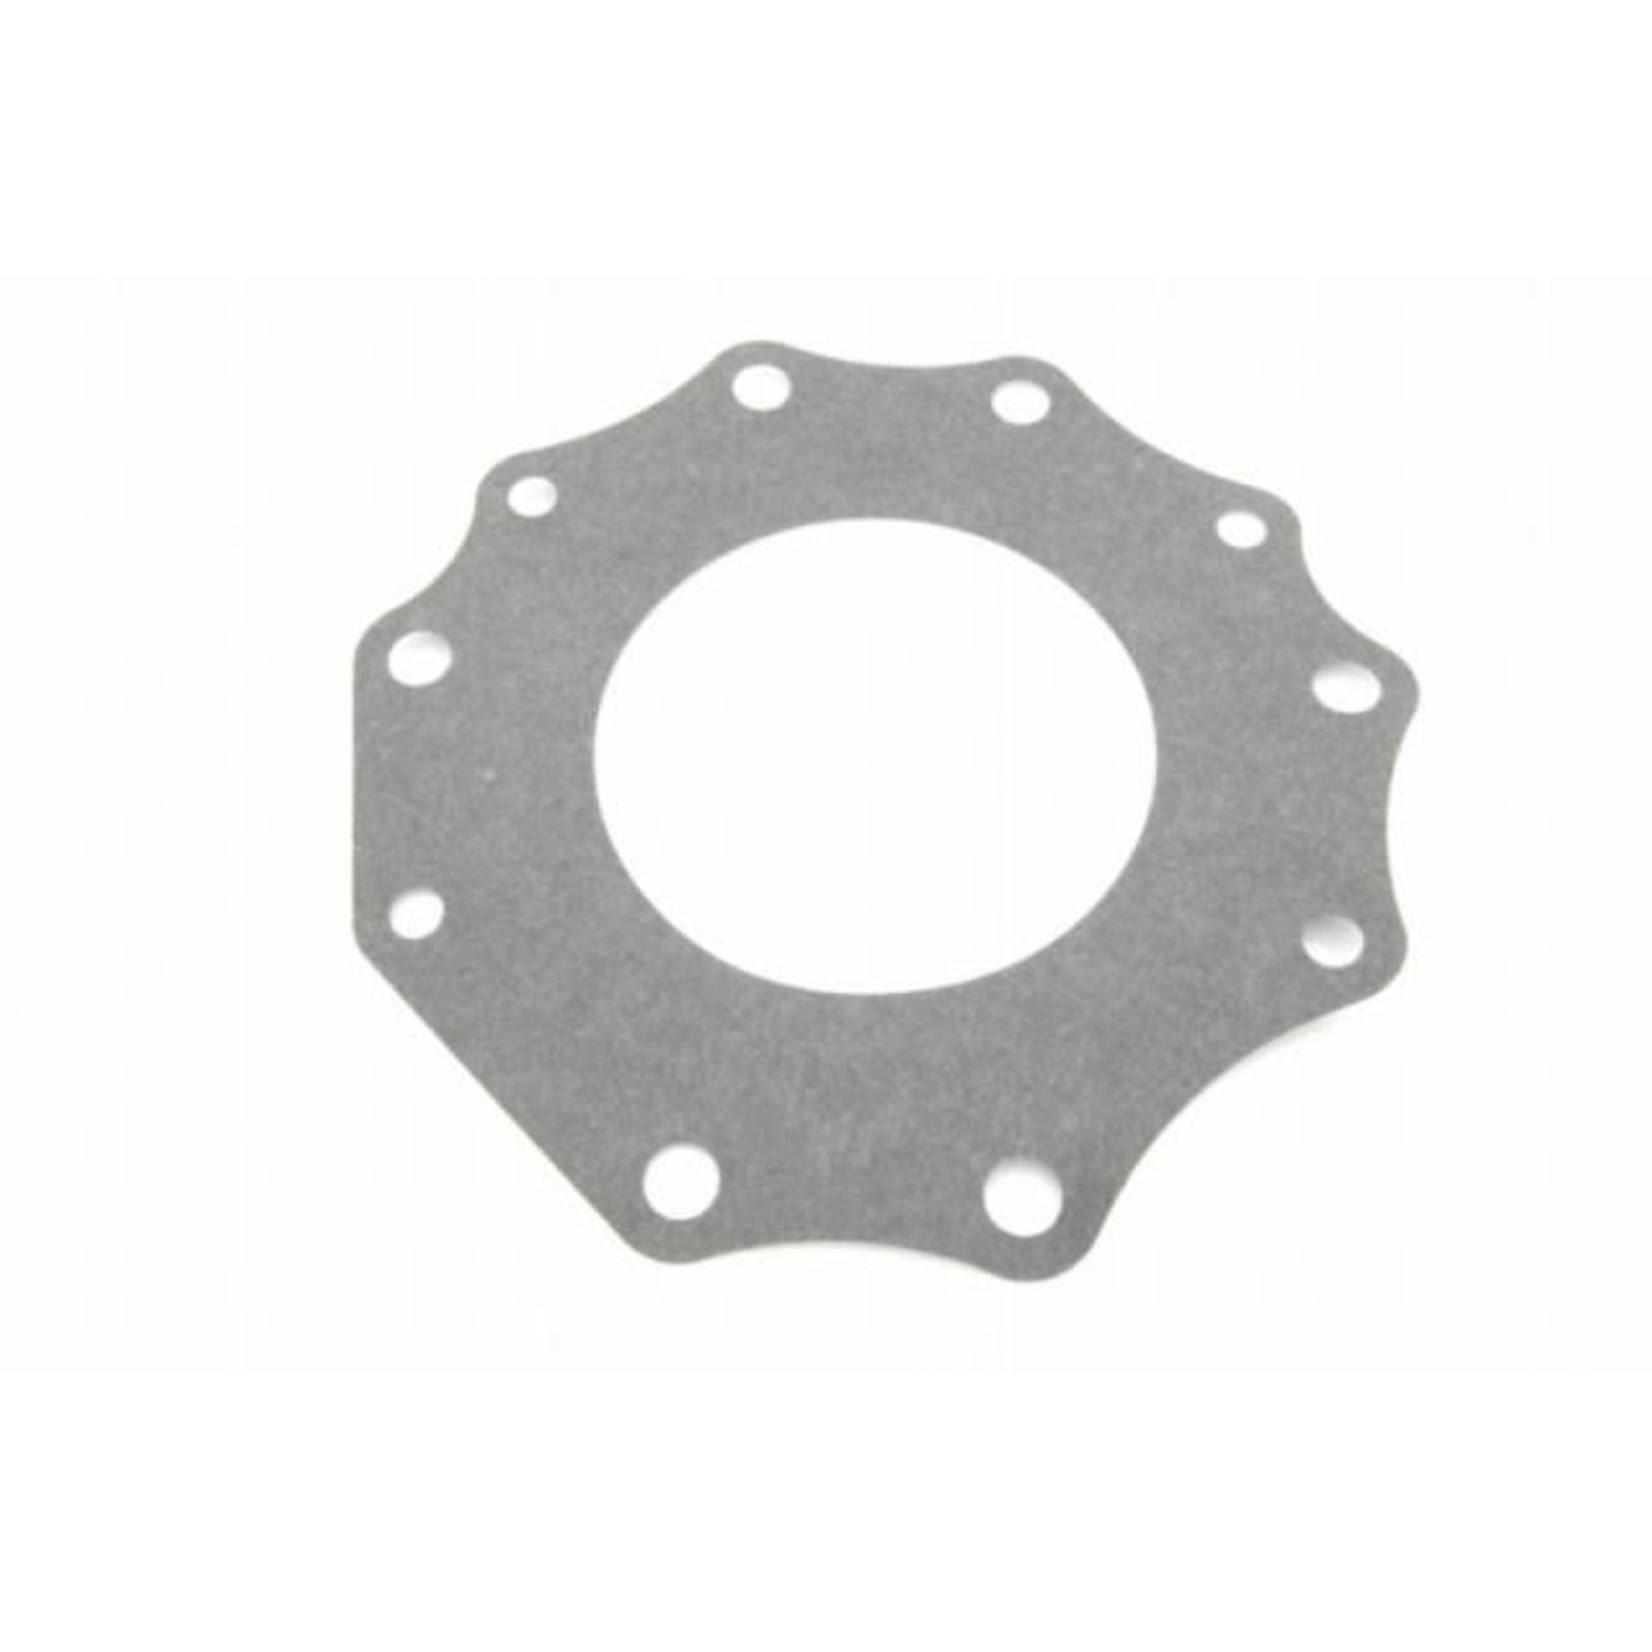 Gasket driving house plate Nr Org: 5409967